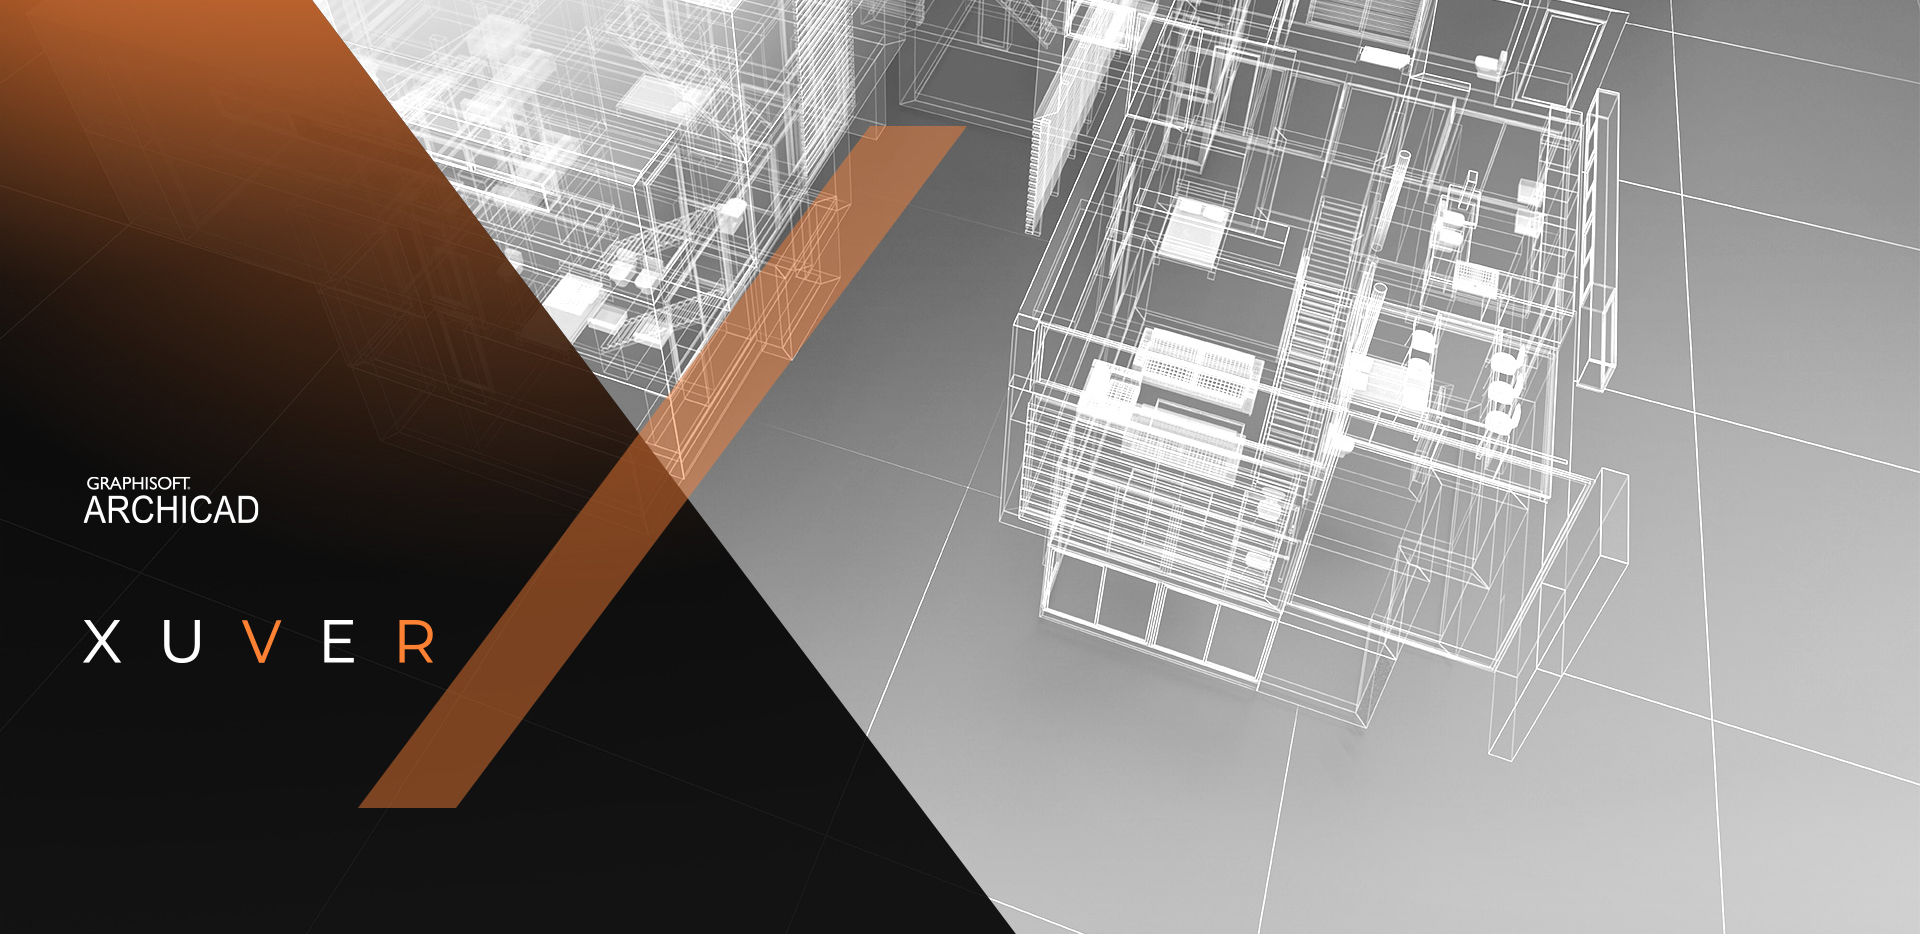 Xuver ArchiCAD plugin for Mac users